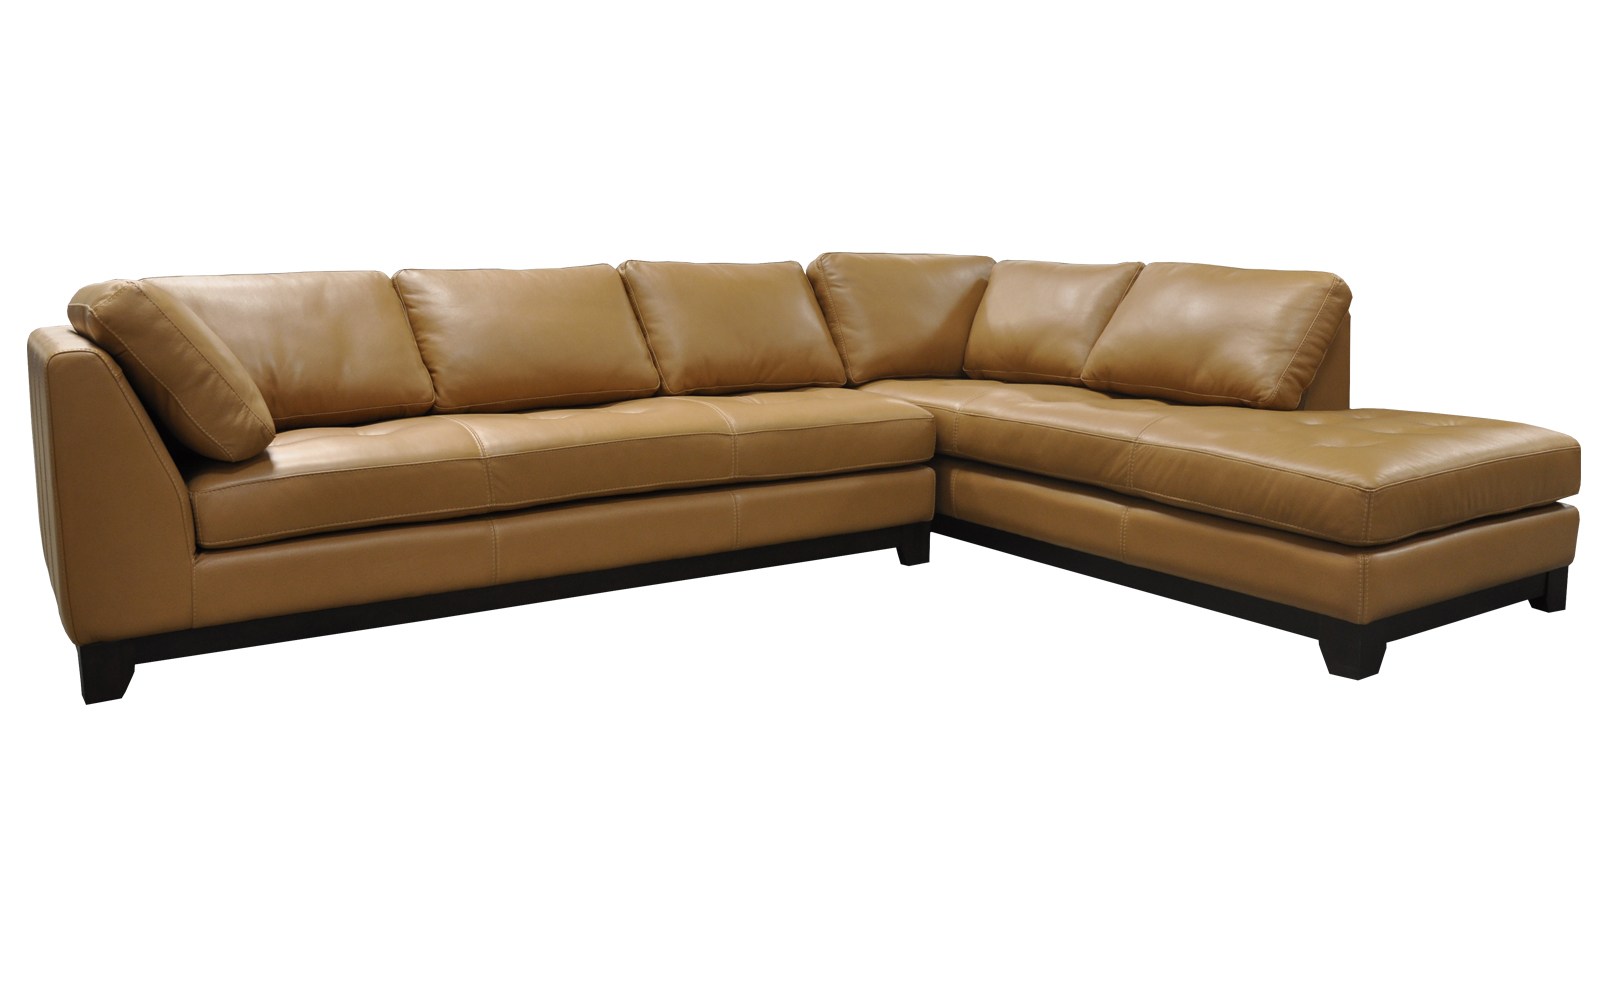 Arizona leather sofas abbyson living arizona leather for Arizona leather sectional sofa with chaise